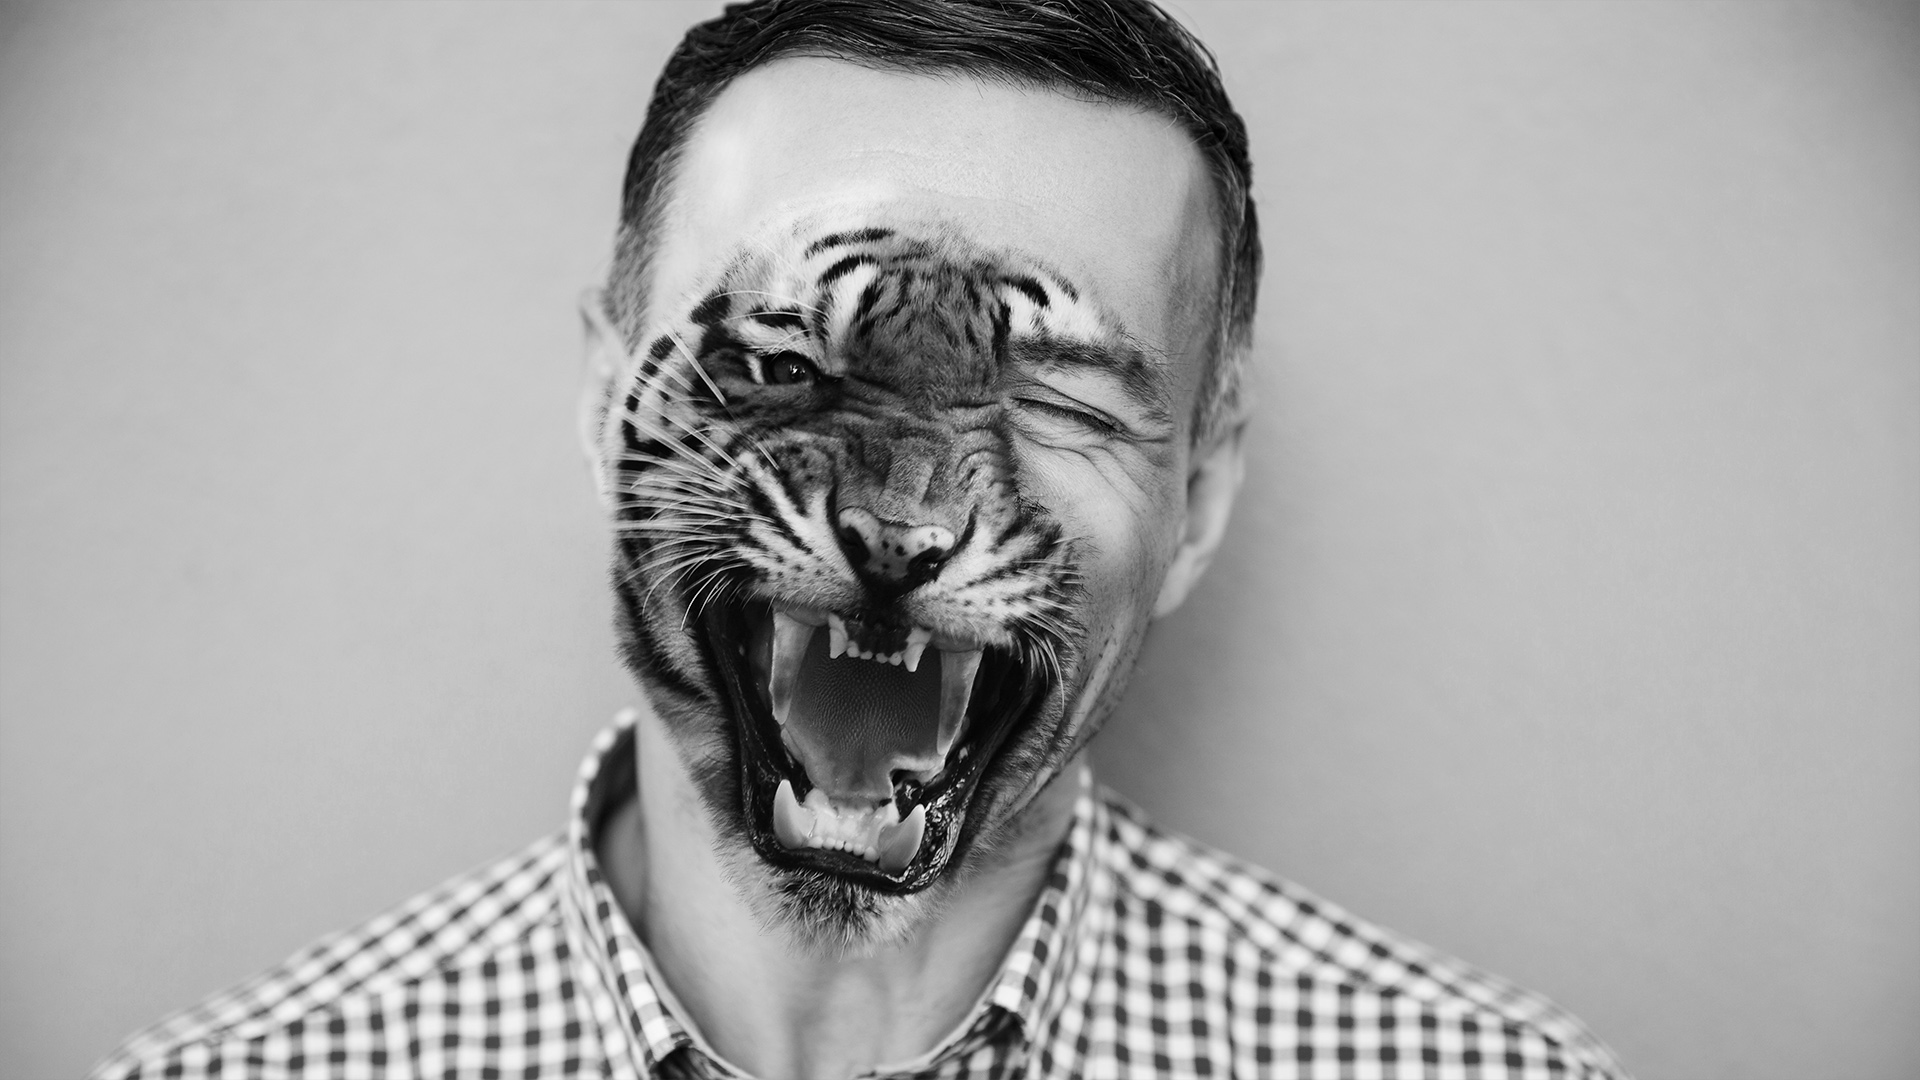 Half man half animal face photoshop tutorial photoshop tutorials half man half animal face photoshop tutorial baditri Gallery